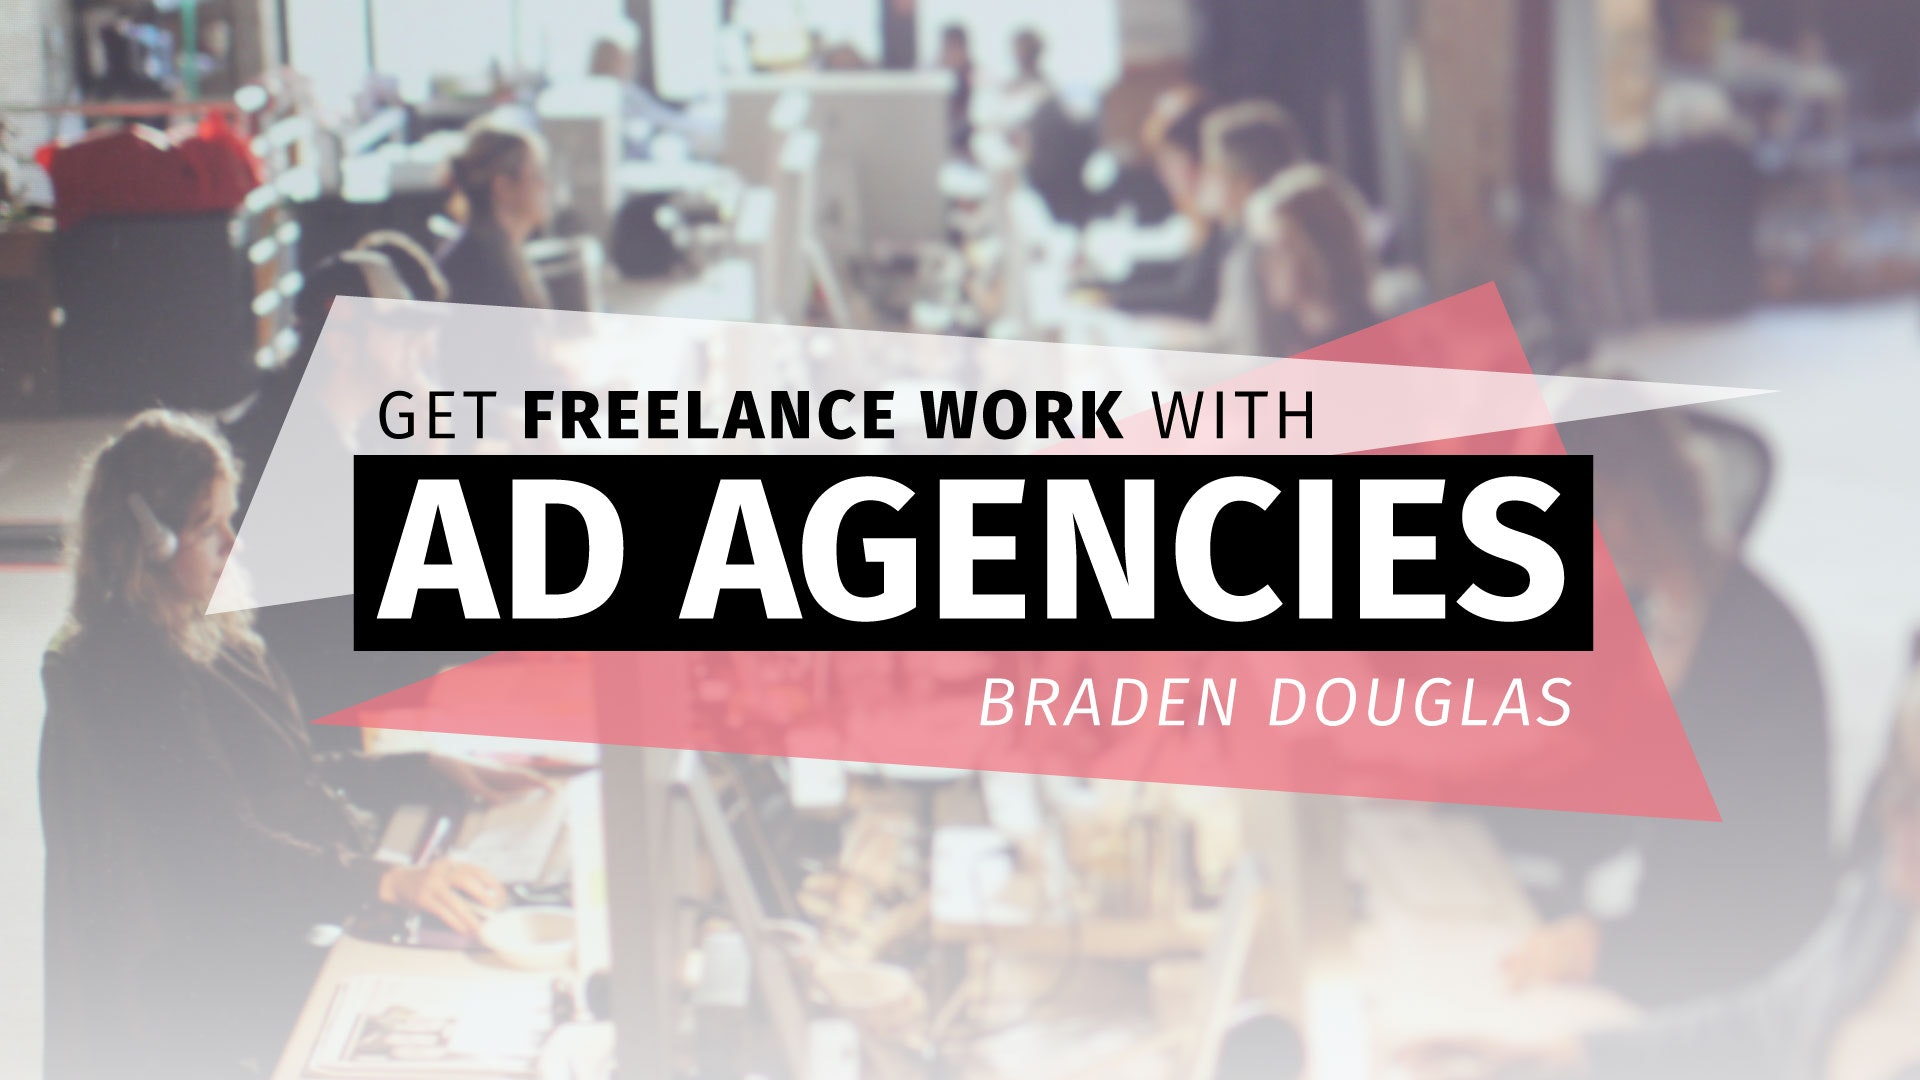 Get freelance work with Ad Agencies